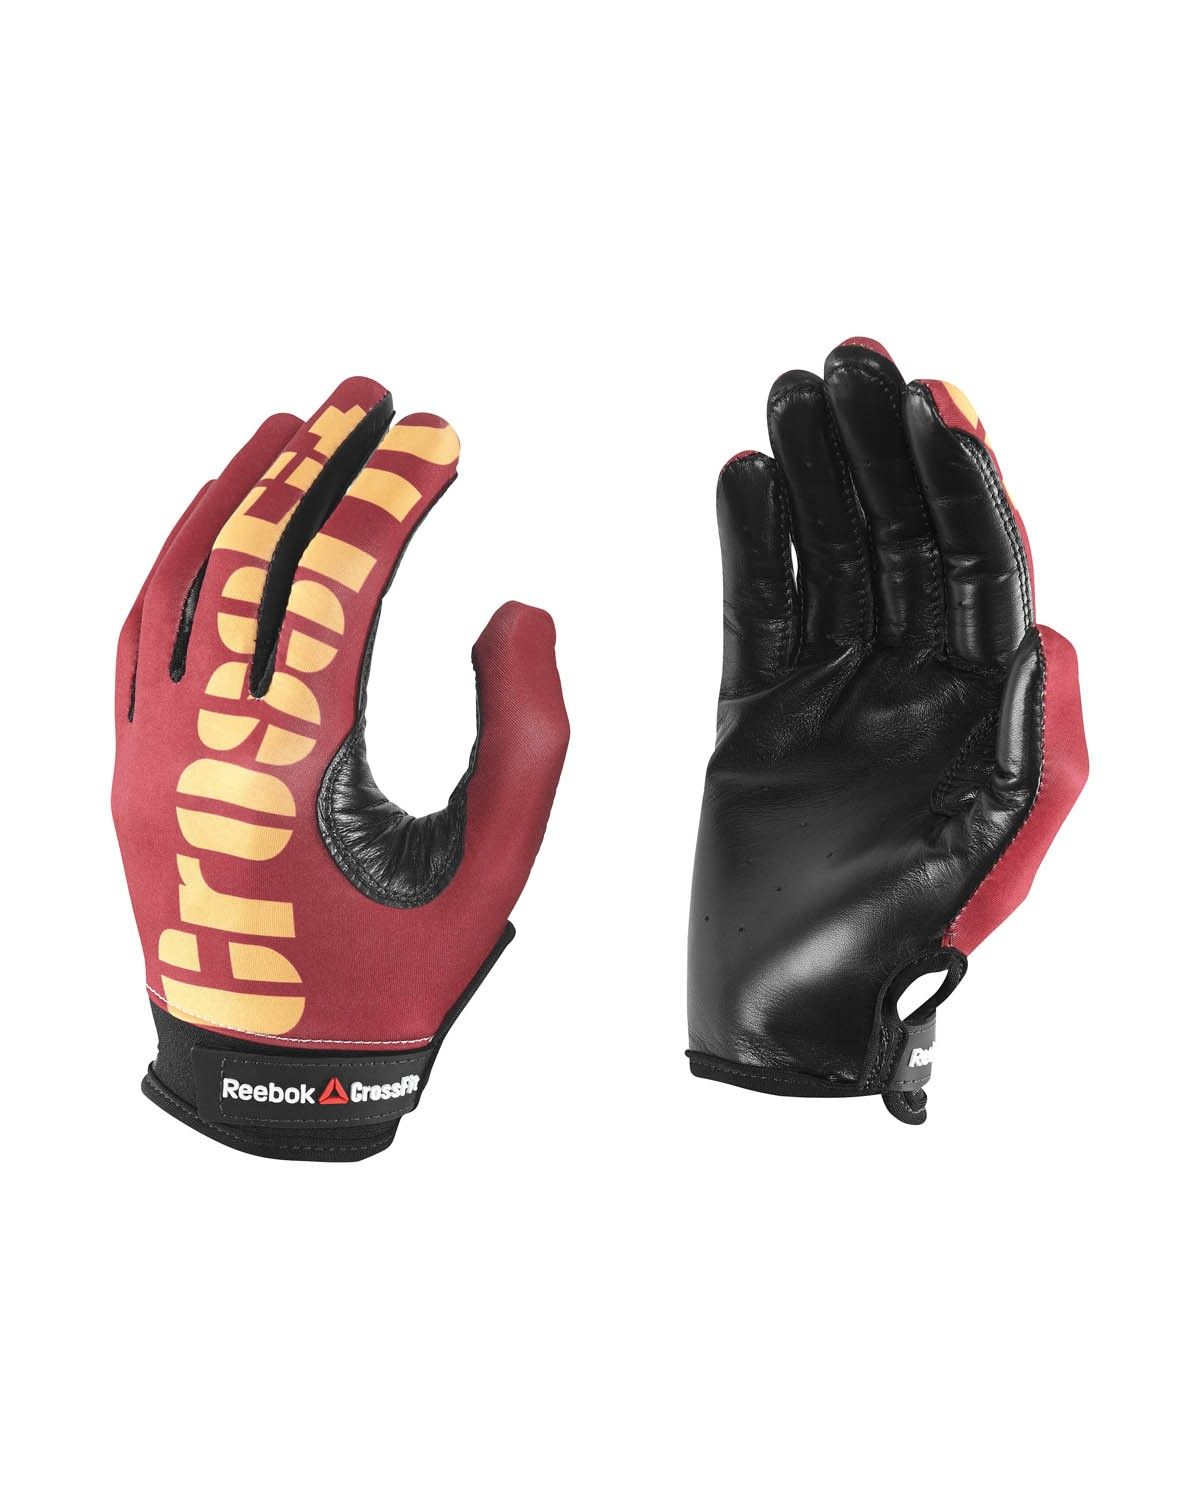 Reebok Crossfit Training Gloves: Women Reebok CrossFit Gloves II